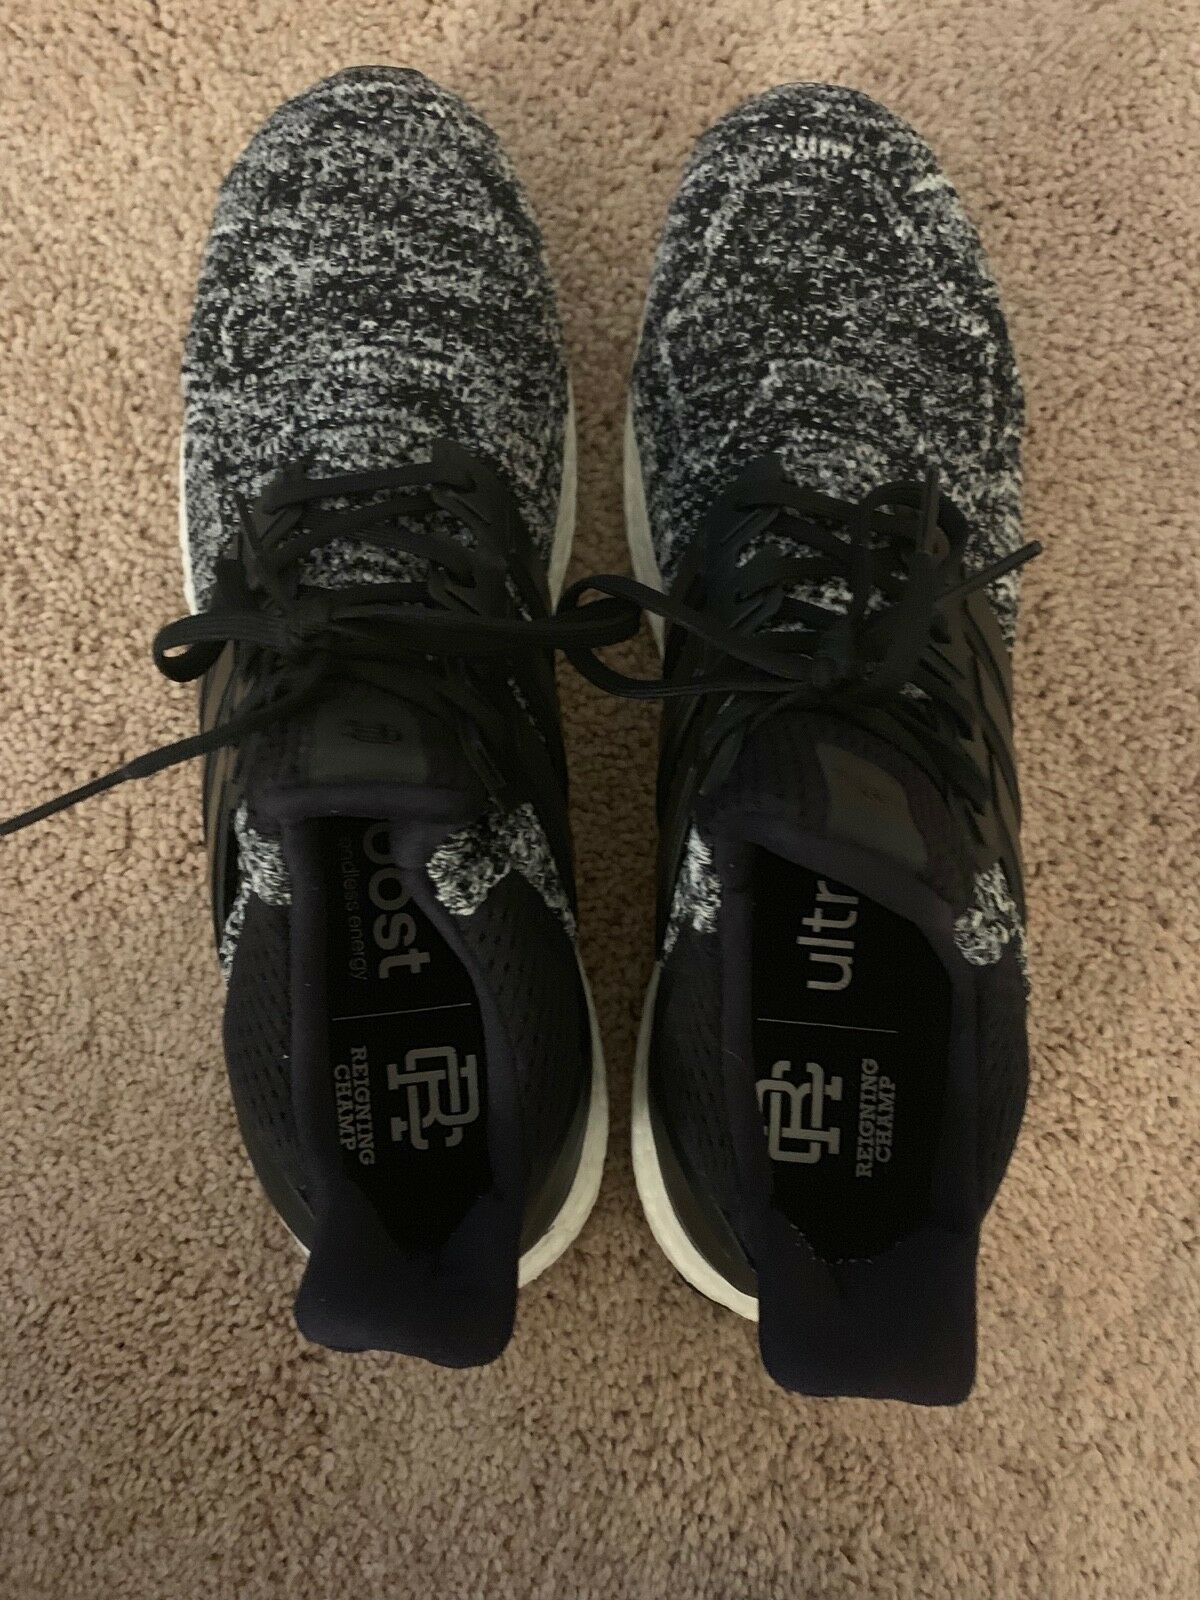 f970a883b8452 Adidas Ultra Boost 1.0 Reigning Champ SIZE 12 Used No Box Excellent  Condition